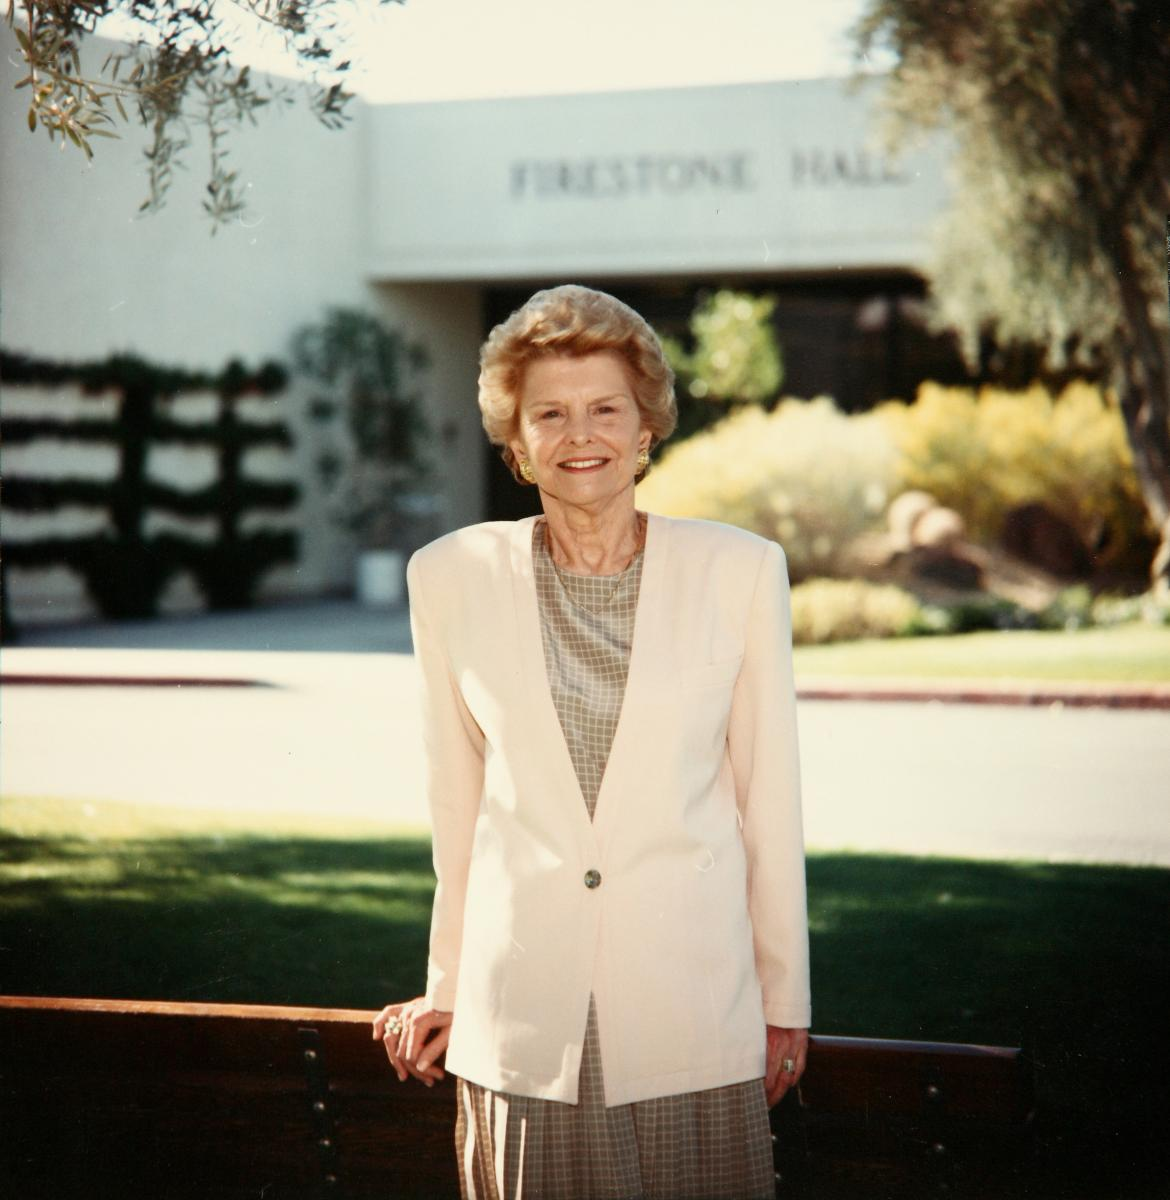 Betty Ford, stands outside the Betty Ford Center, a treatment center for alcohol and drug depency that she co-founded in 1982. 1990. Image courtesy of Betty Ford Center.